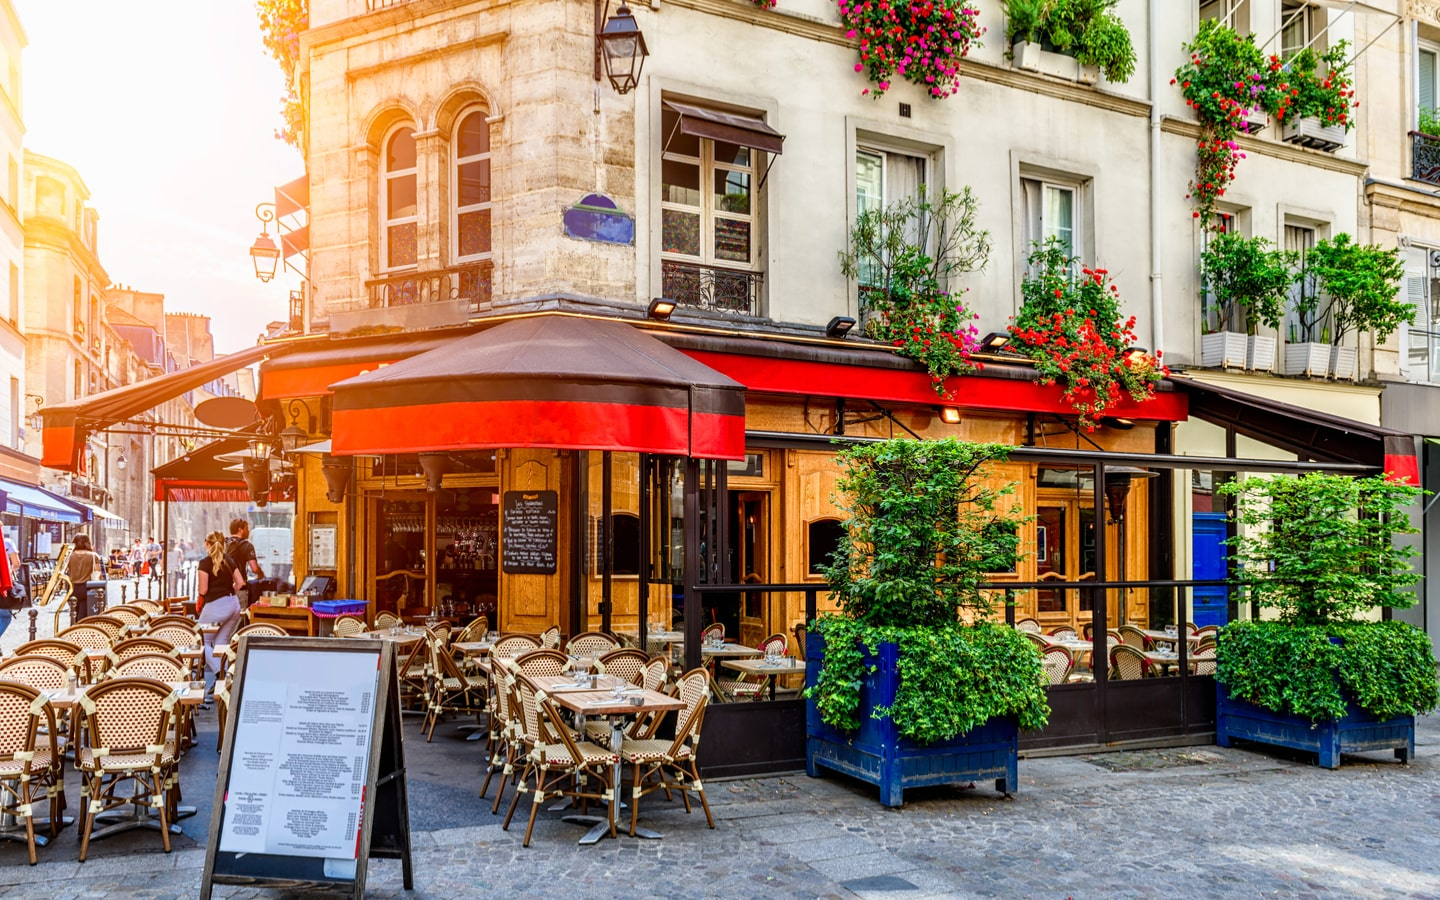 Cafe with outdoor seating on a street in Paris